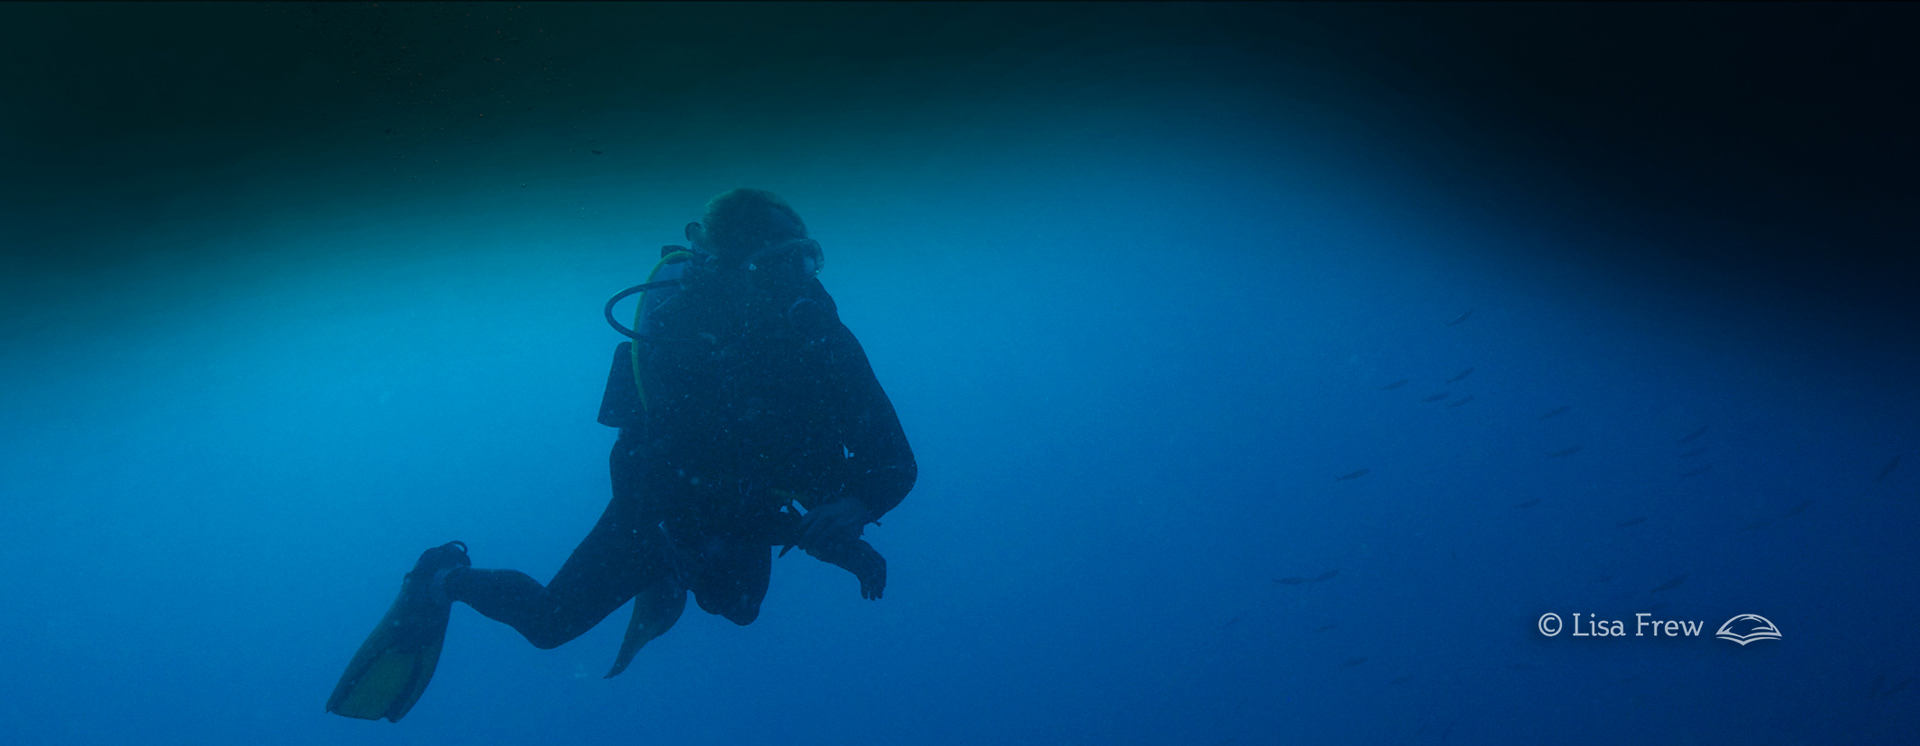 Image of diver on PADI search & recovery specialty course